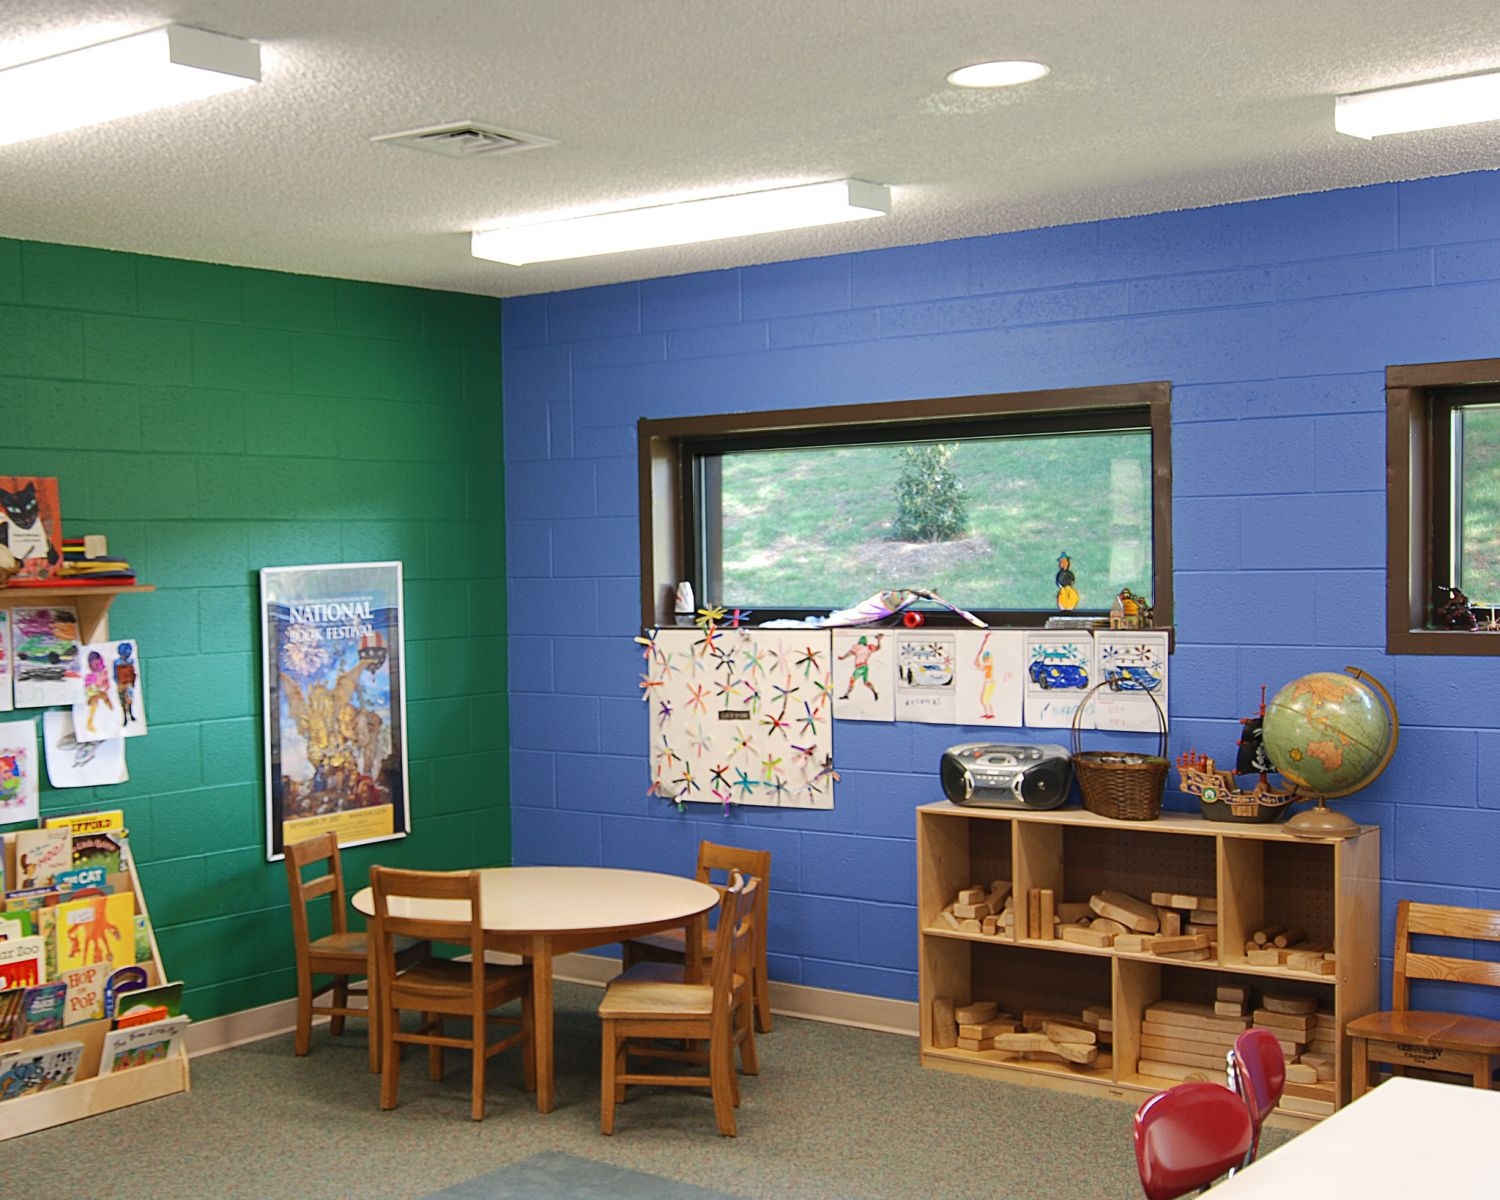 Classroom Environment Design ~ Universal design preschool through kindergarten ne lre